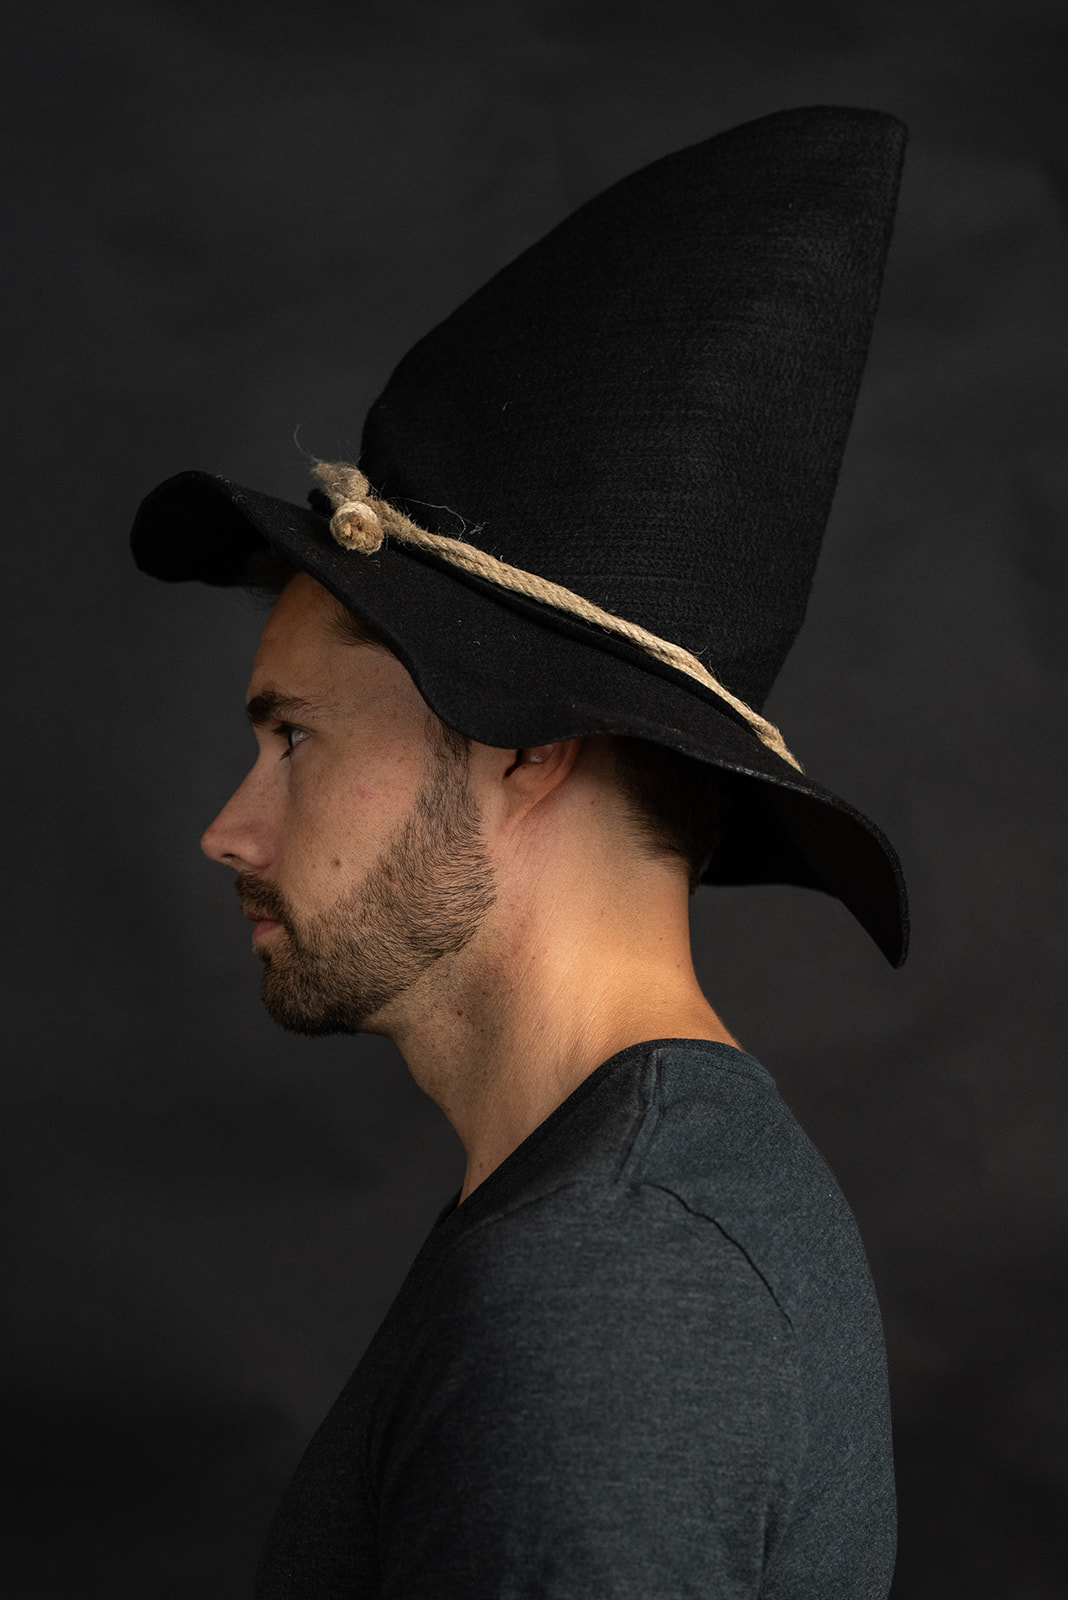 thumbnail 6 - Adult Scarecrow Hat Deluxe Felt Oktoberfest Wizard Witch Hillbilly Hat Costume